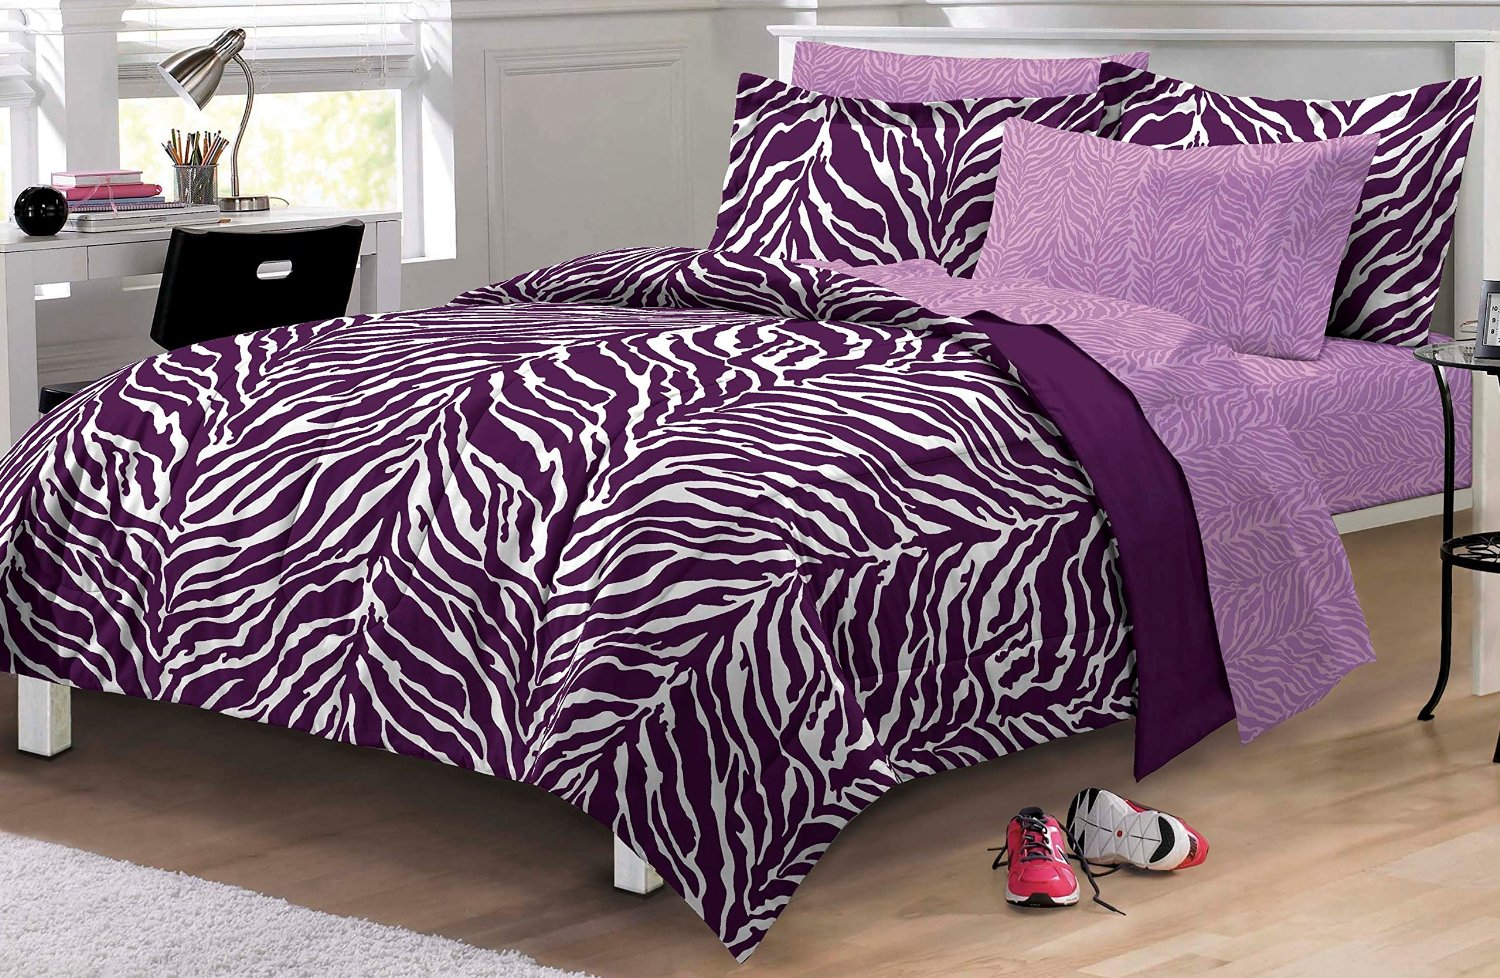 Bedroom Ideas Leopard Print zebra animal print bedroom decor ideas animal print bedding sets